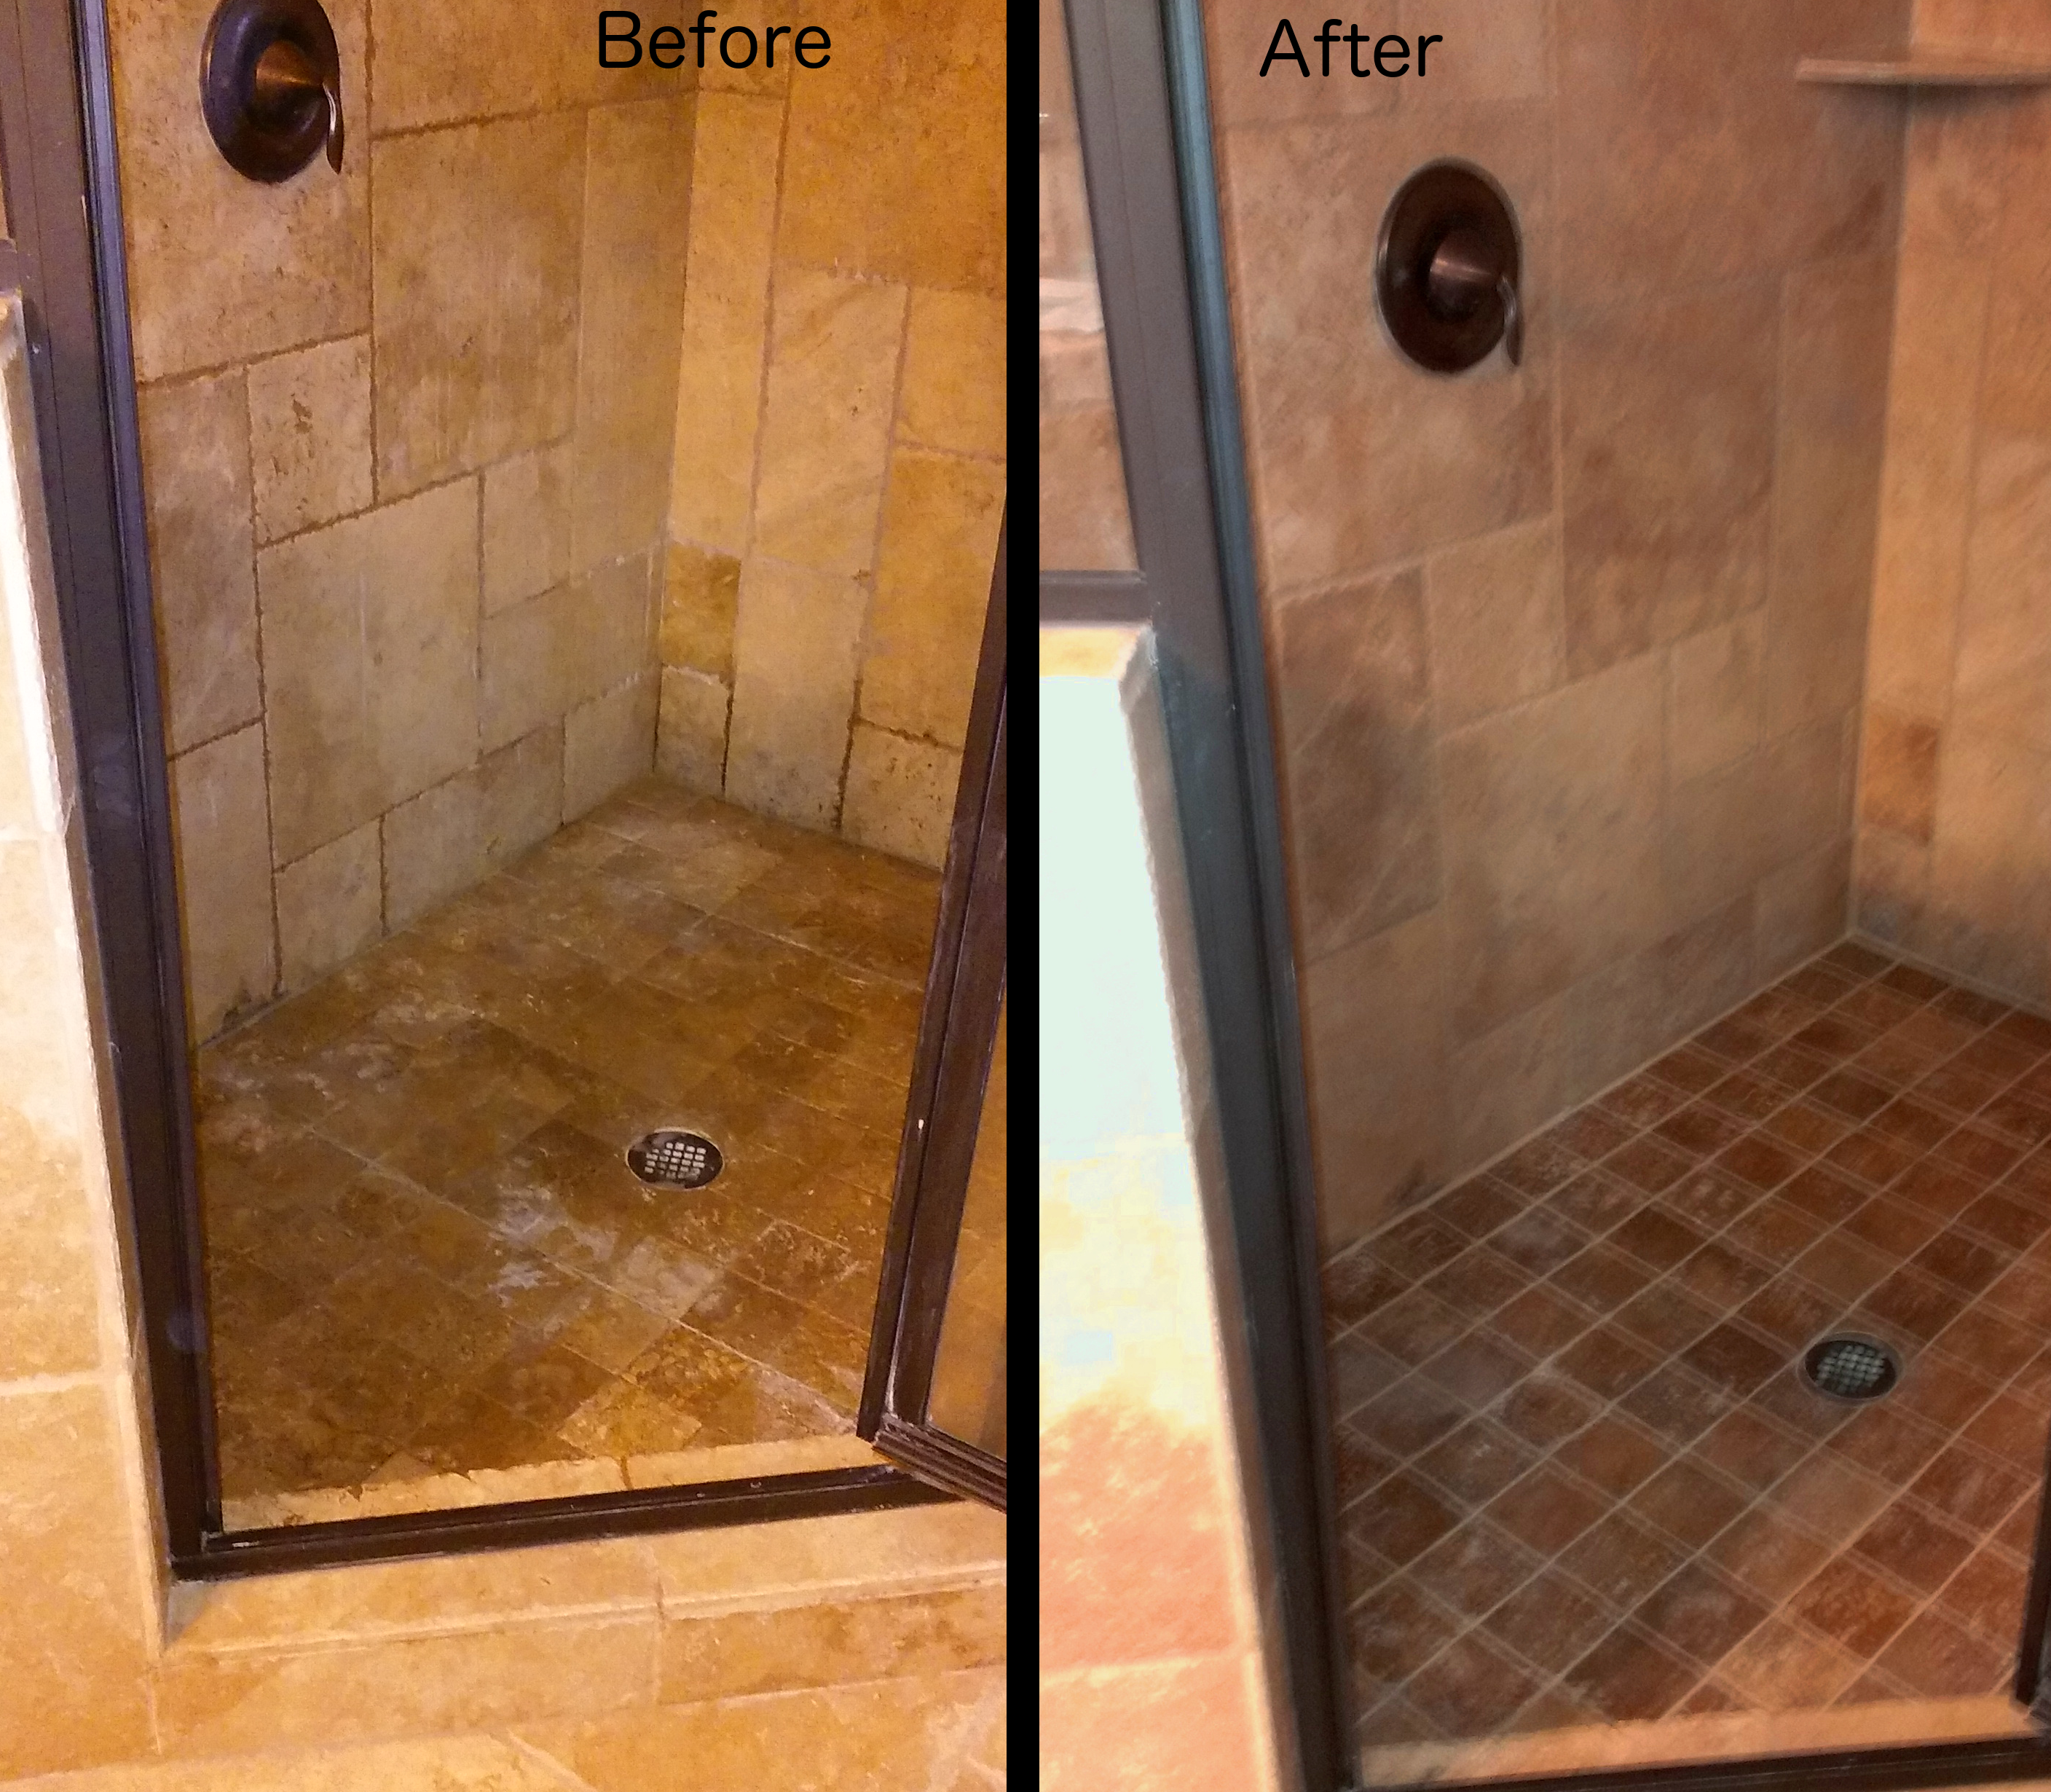 Before and after the grout masterthe grout master